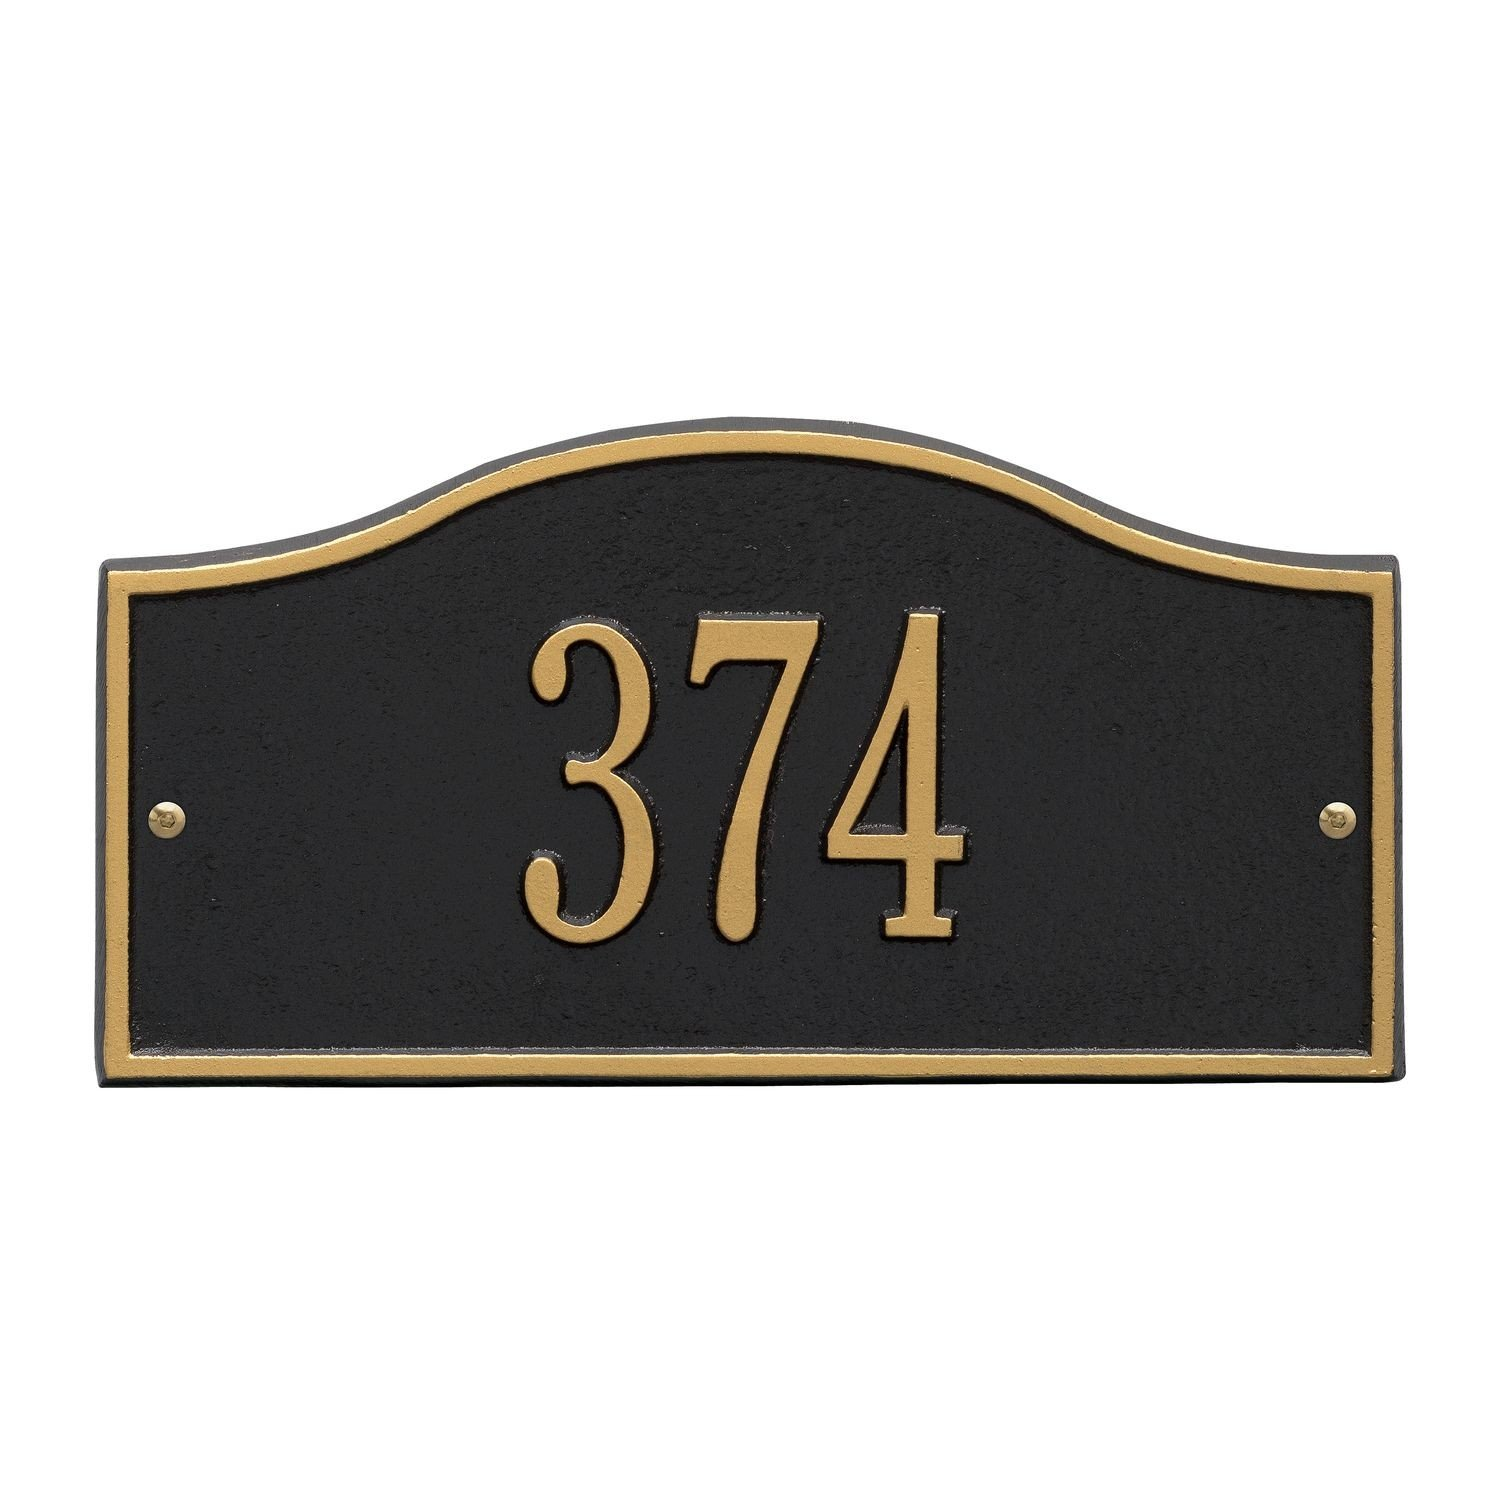 Whitehall Personalized Cast Metal Address Plaque - Small Rolling Hills Custom House Number Sign - 12'' x 6'' - Allows Special Characters - Black/Gold